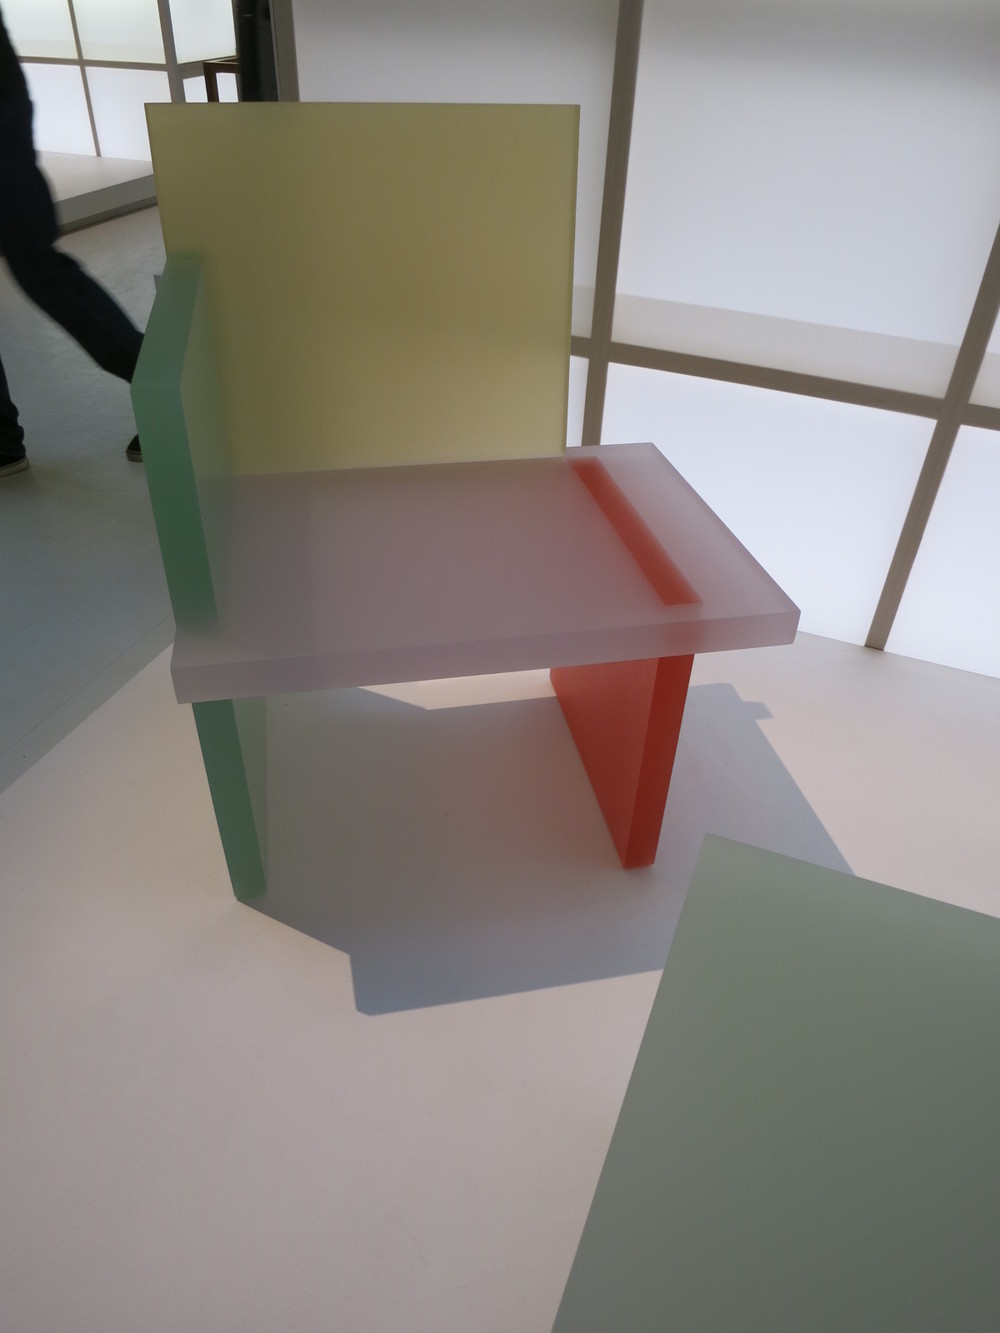 Musee des Art Decoratifs, Paris. 'Korea Now' exhibition 2015. The resin chair designed by Park Won-min